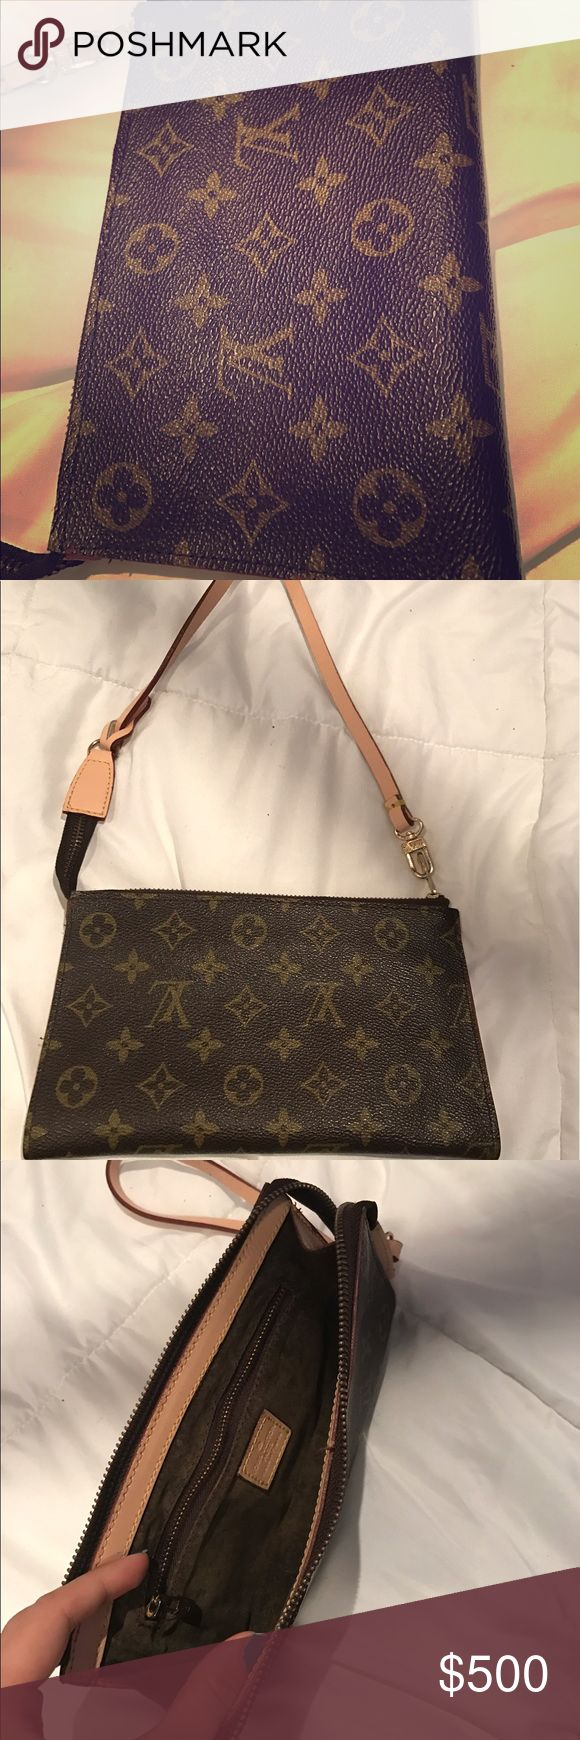 Authentic Louis Vouitton Paris clutch/wristlet Beautiful mini purse can be used as clutch or wristlet. Only used a couple times. Was a gift. Selling because I'm not crazy about Louis Vuitton. But this is a beautiful bag in great condition! I am accepting reasonable offers. NEED GONE! Thanks Louis Vuitton Bags Clutches & Wristlets